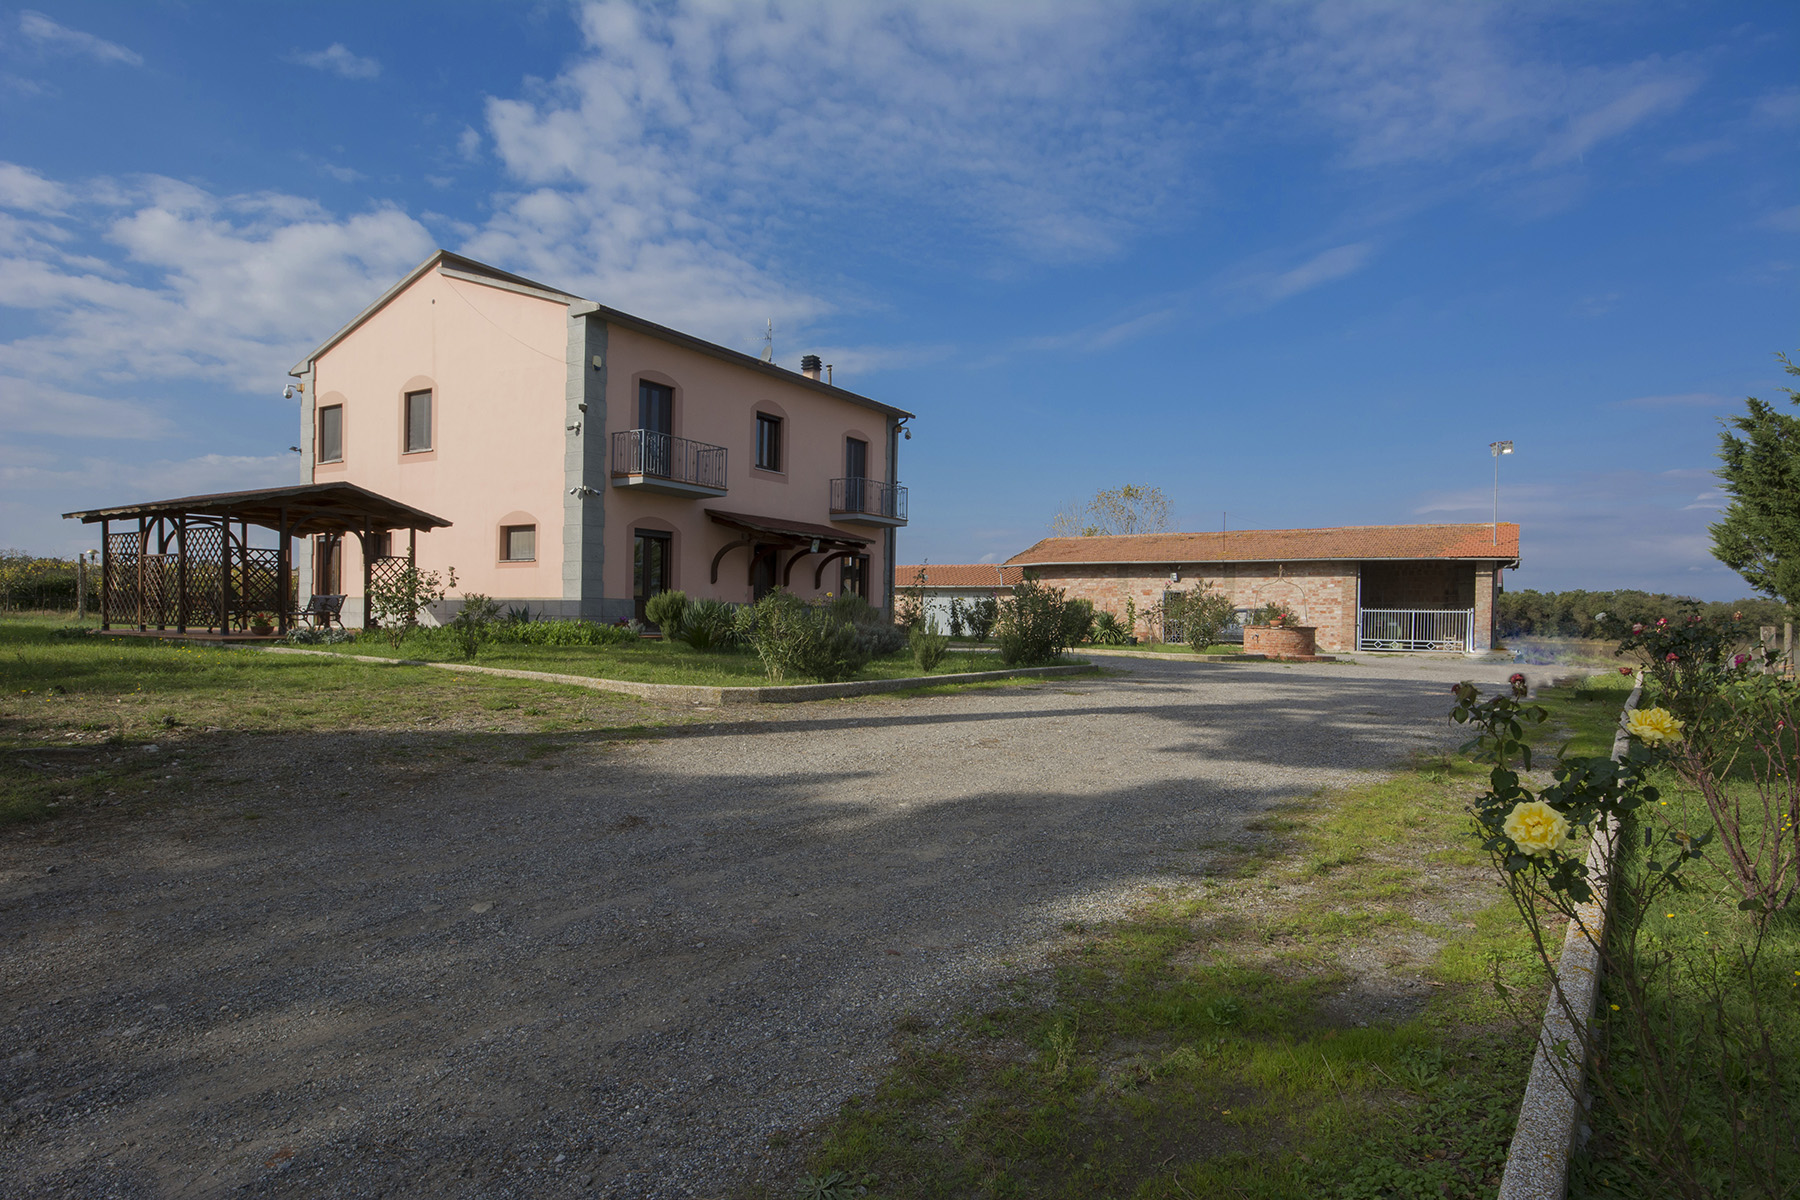 Additional photo for property listing at Stunning natural oasis facing Trasimeno Lake Via Trasimeno Other Perugia, Perugia 06061 Italy